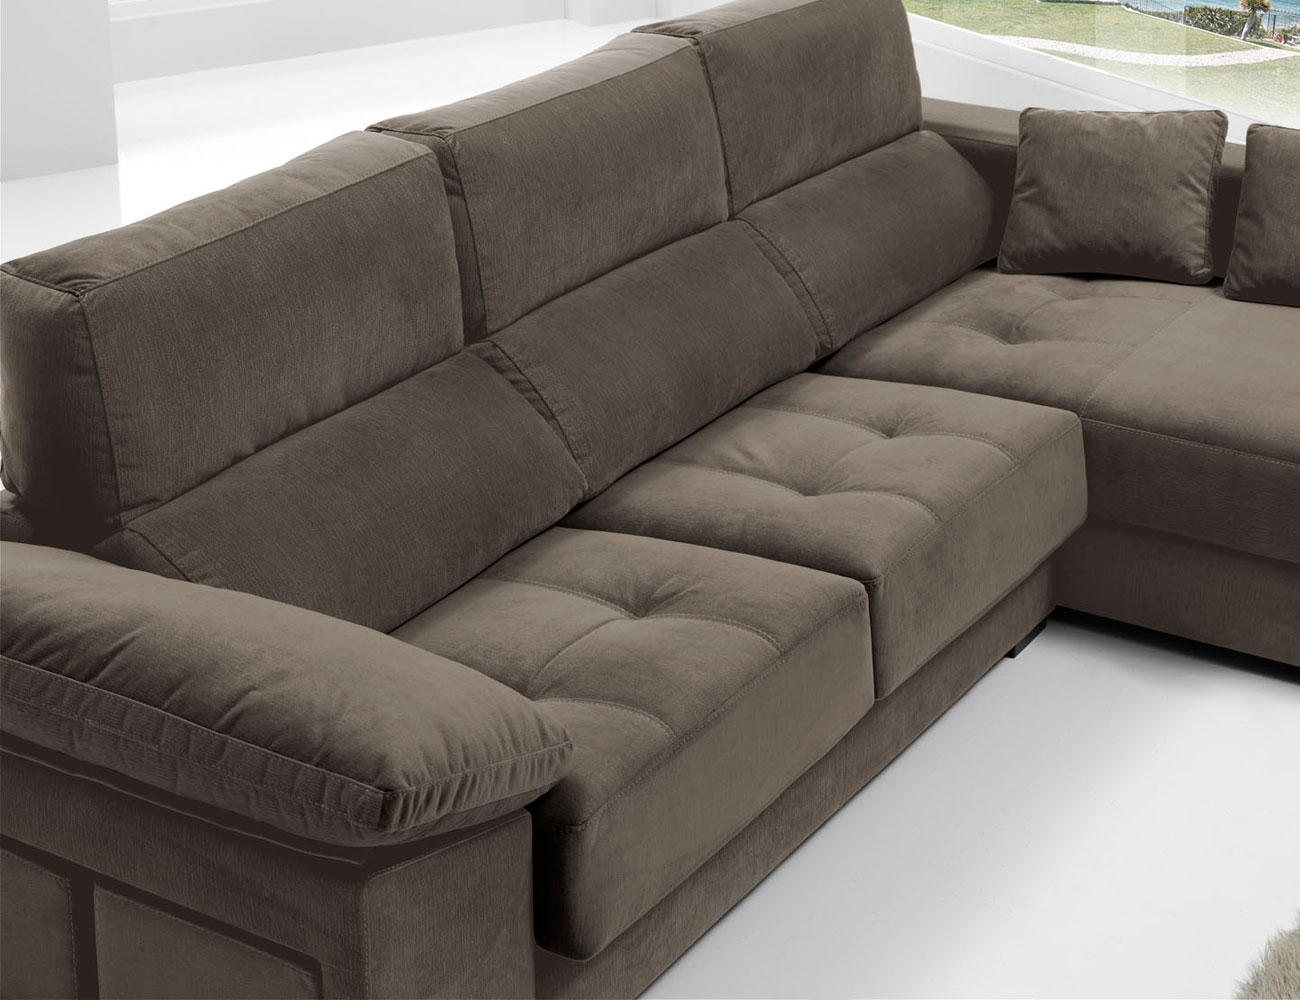 Sofa chaiselongue anti manchas bering pouf 280